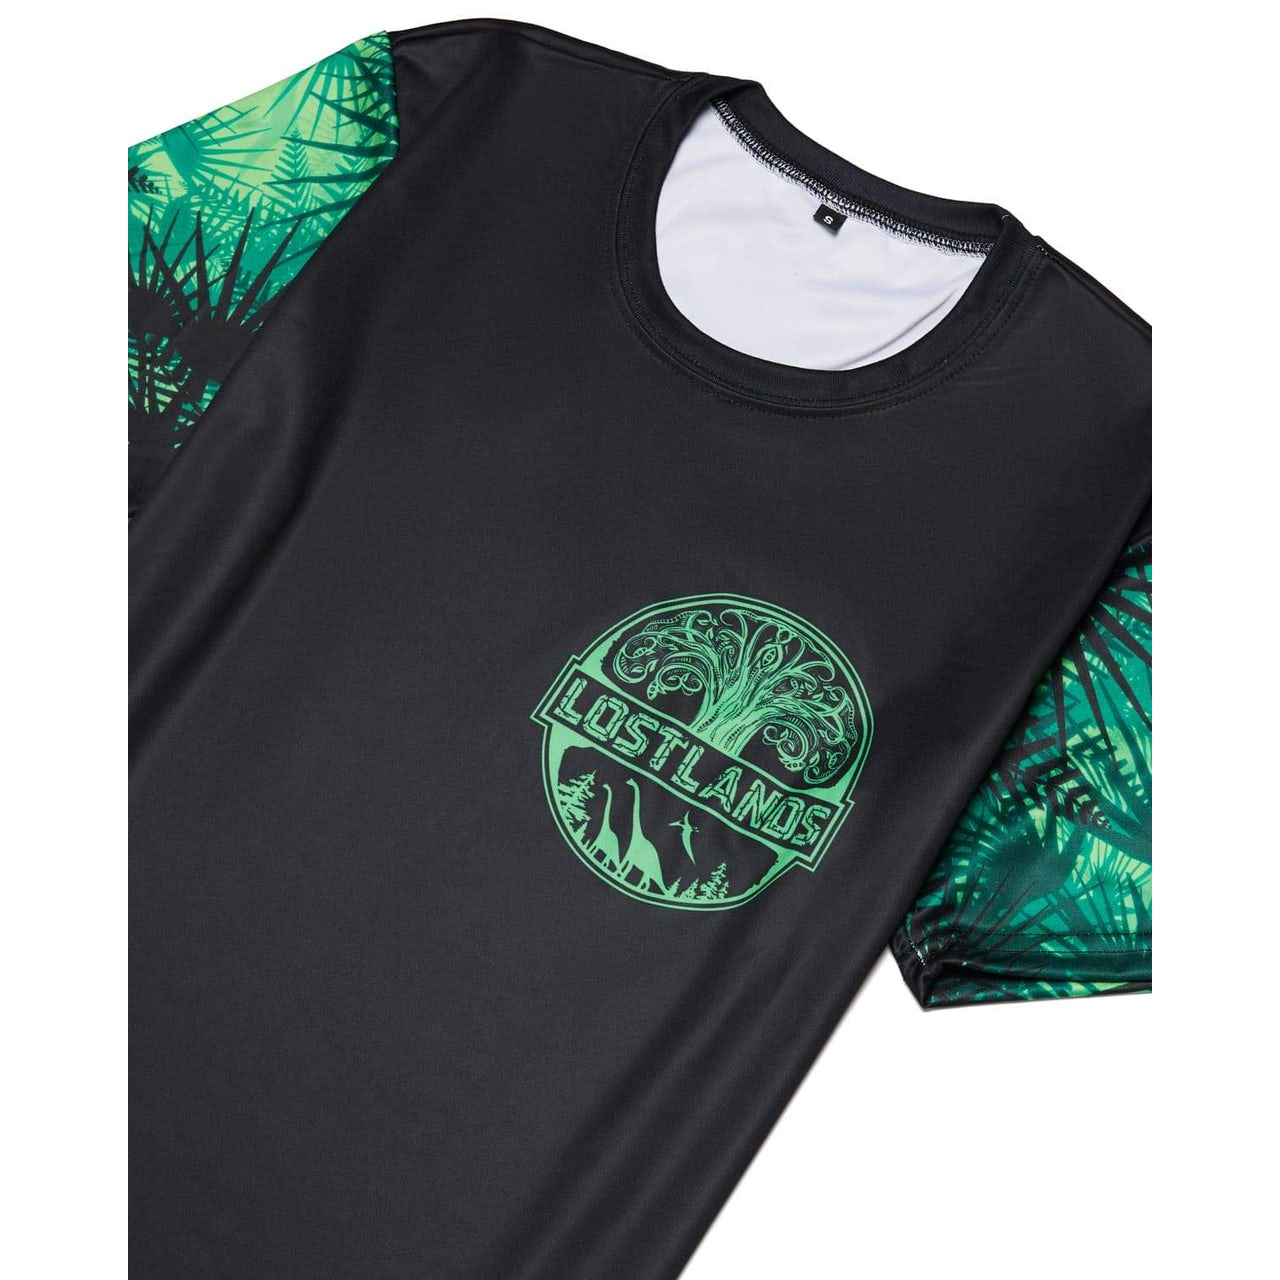 3ecbf20e6 Excision Official Lost Lands 2018 T-Shirt (Black/Green). Touch to zoom